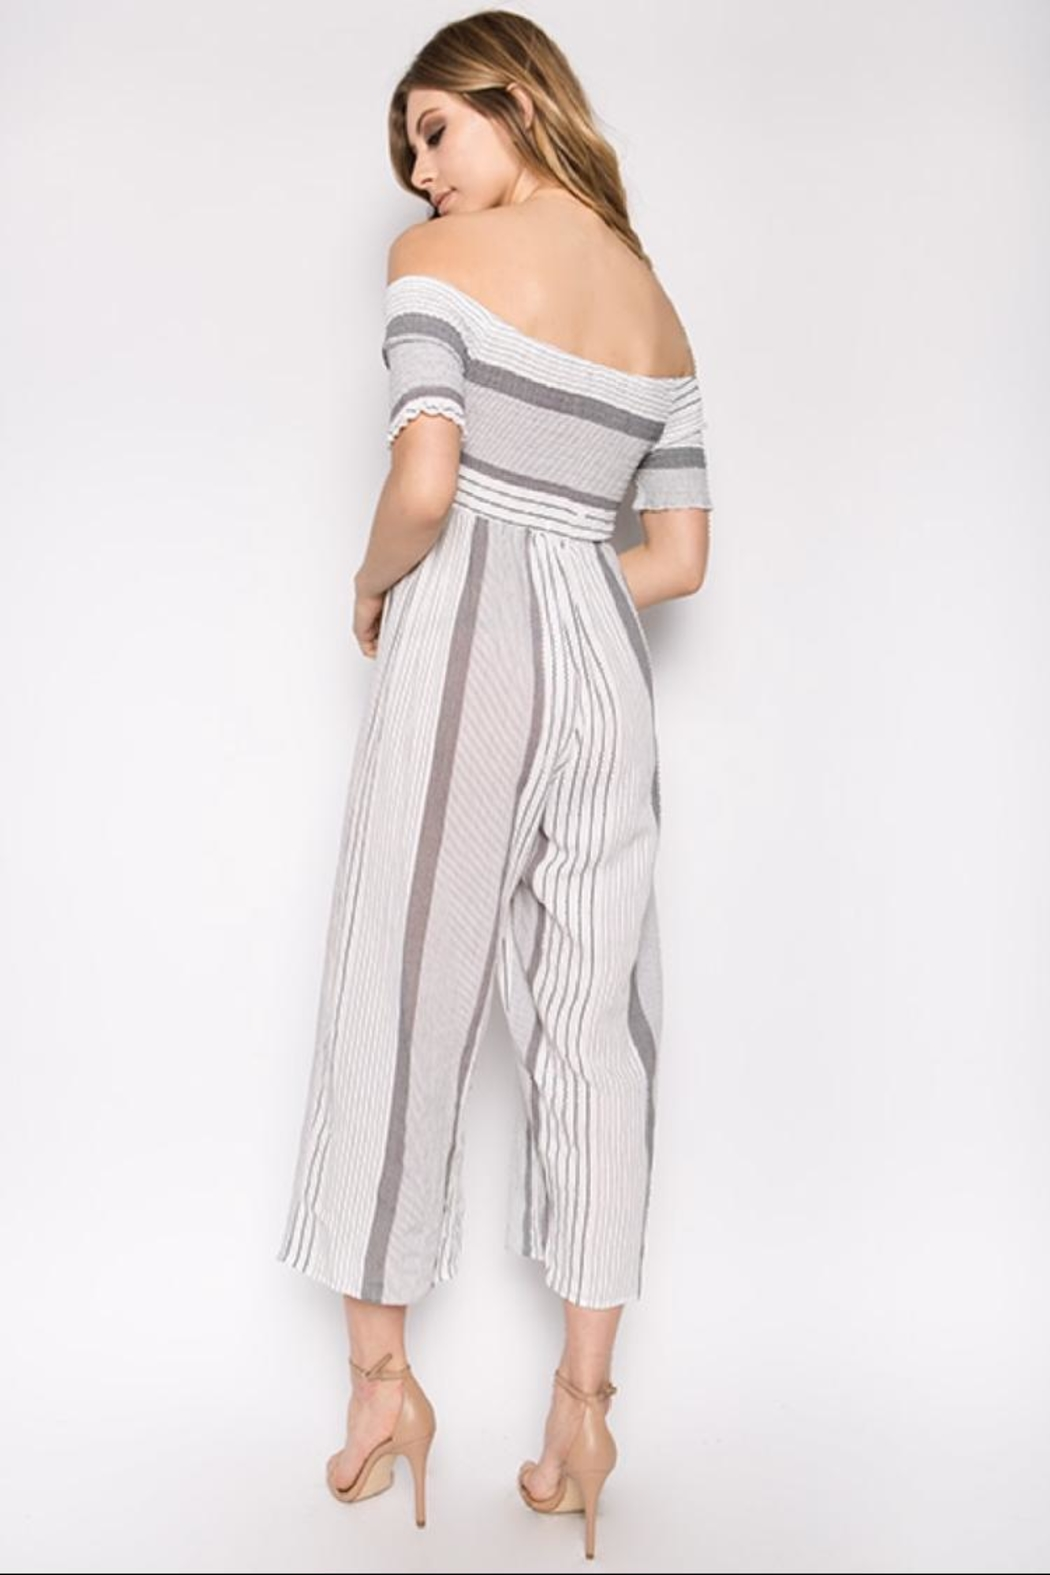 hers and mine Striped Off-Shoulder Jumpsuit - Front Full Image